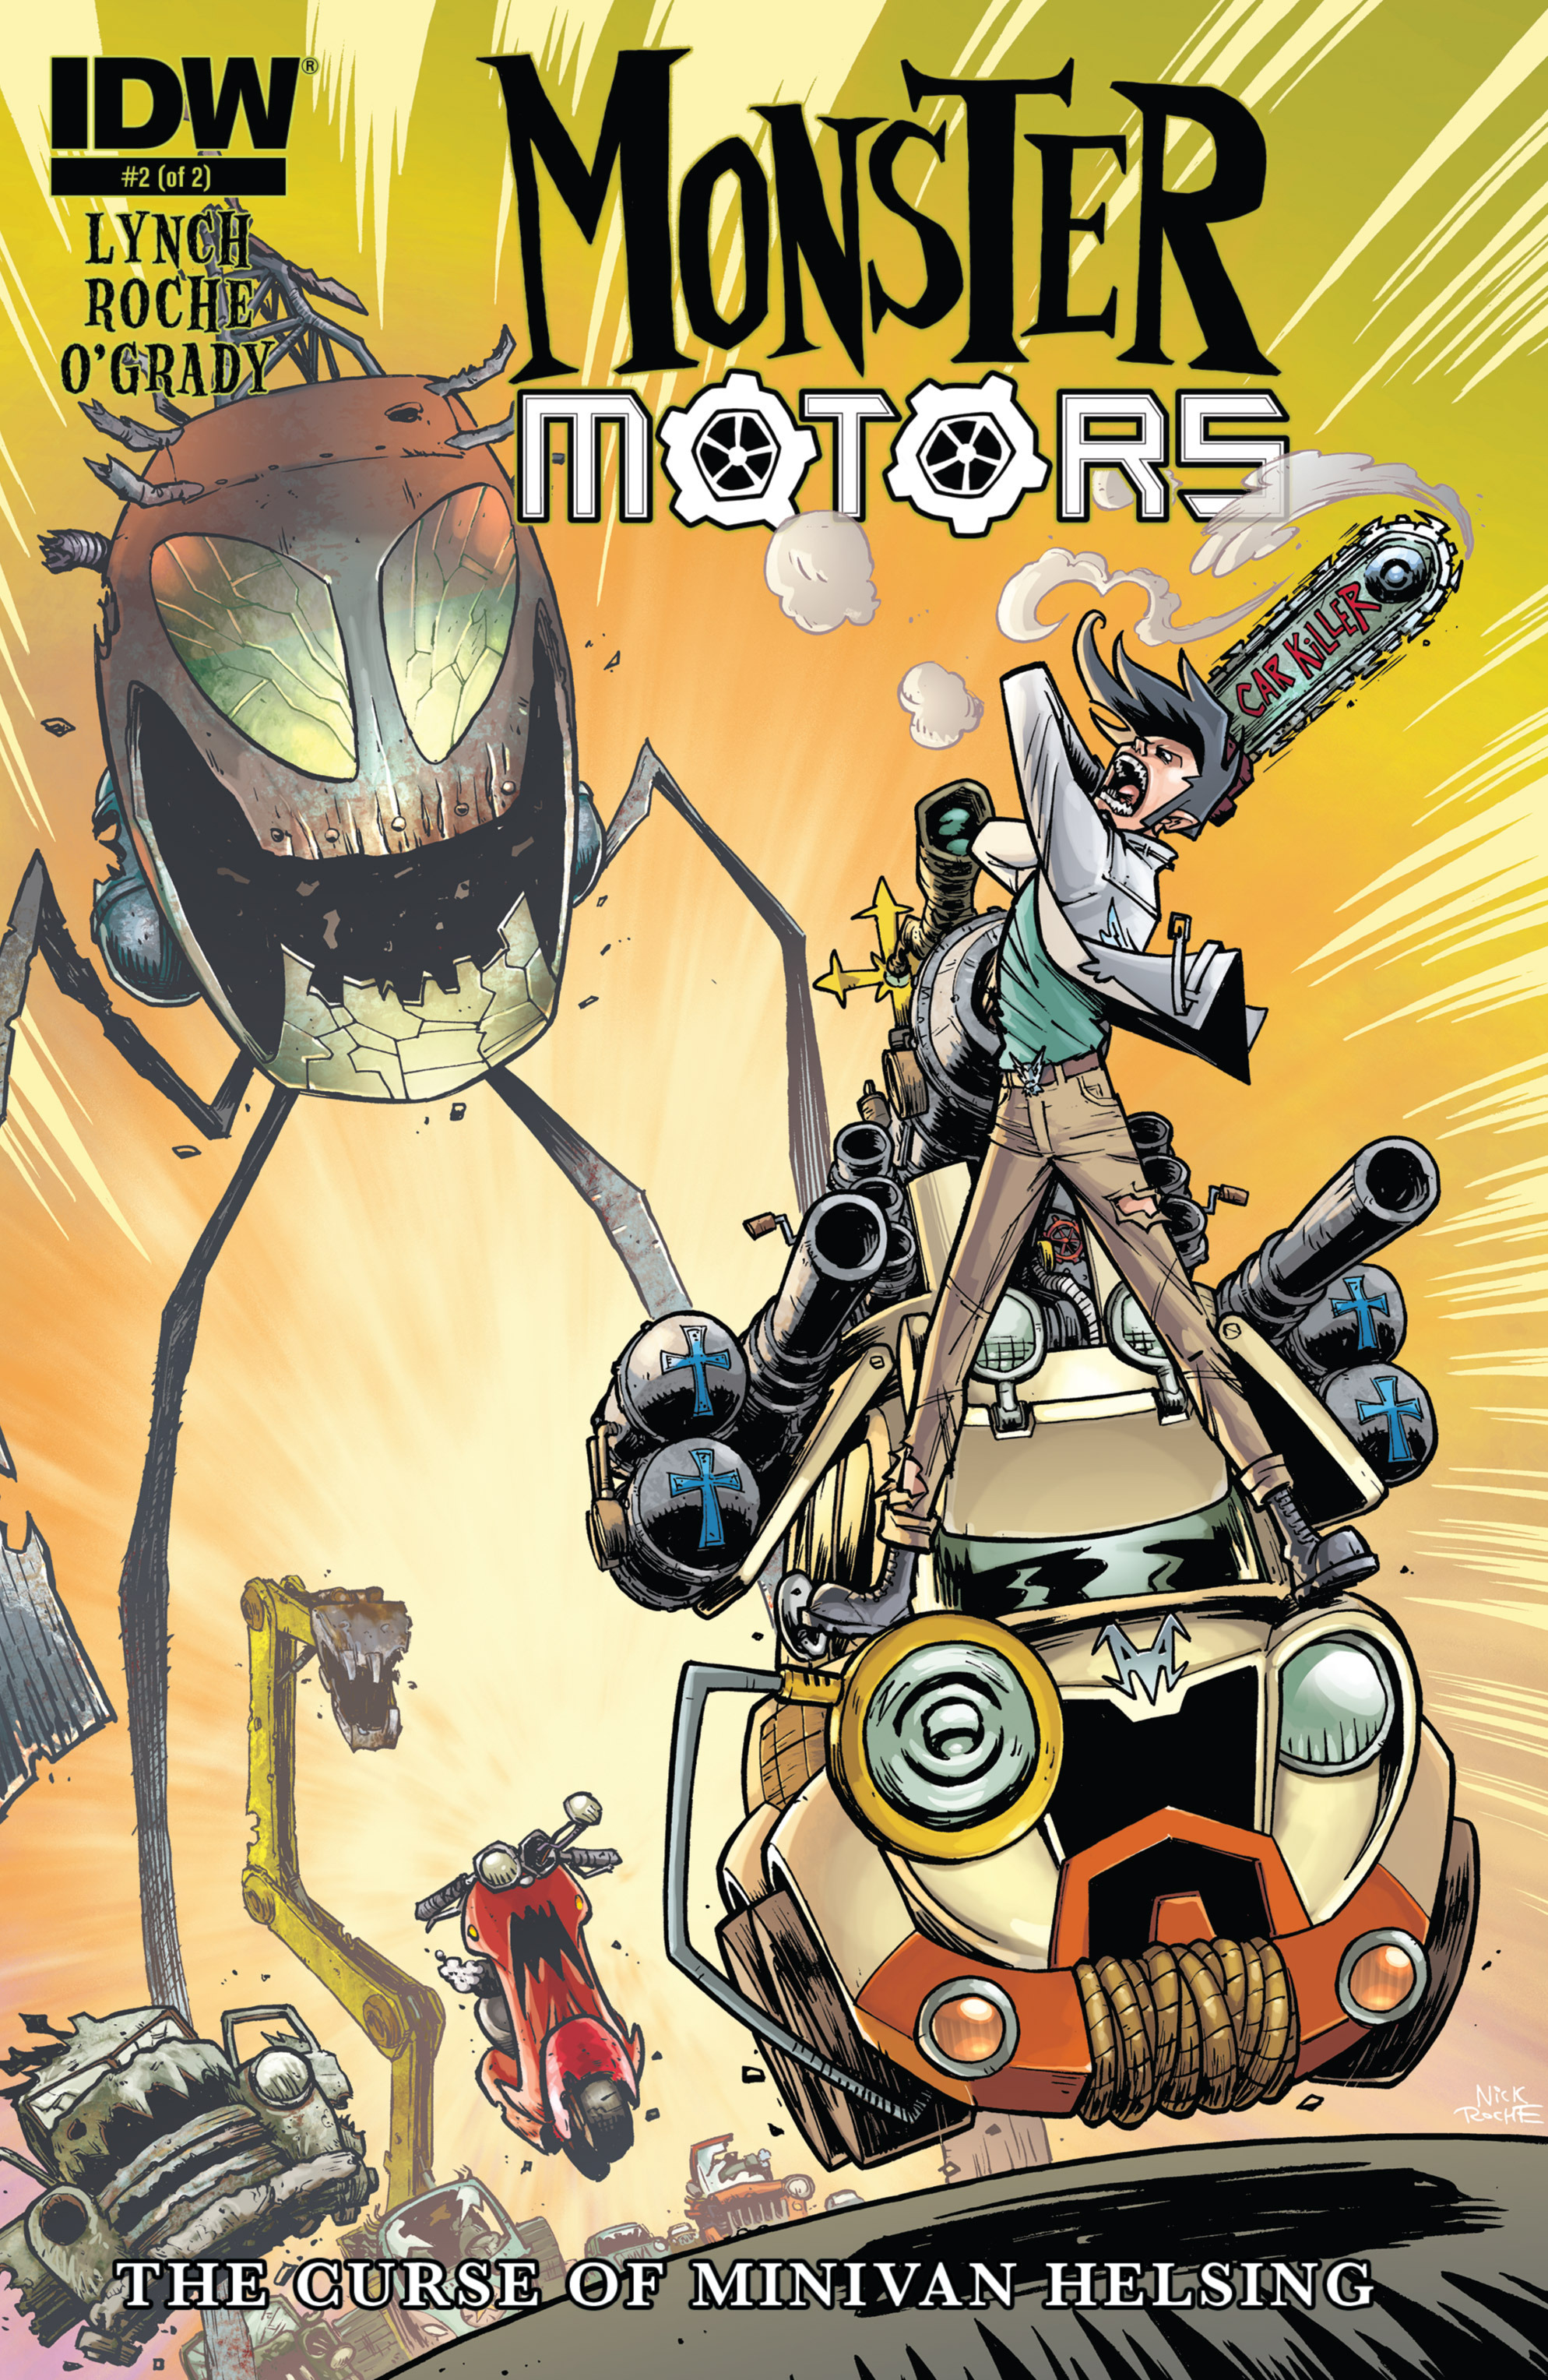 Monster Motors: The Curse of Minivan Helsing issue 2 - Page 1